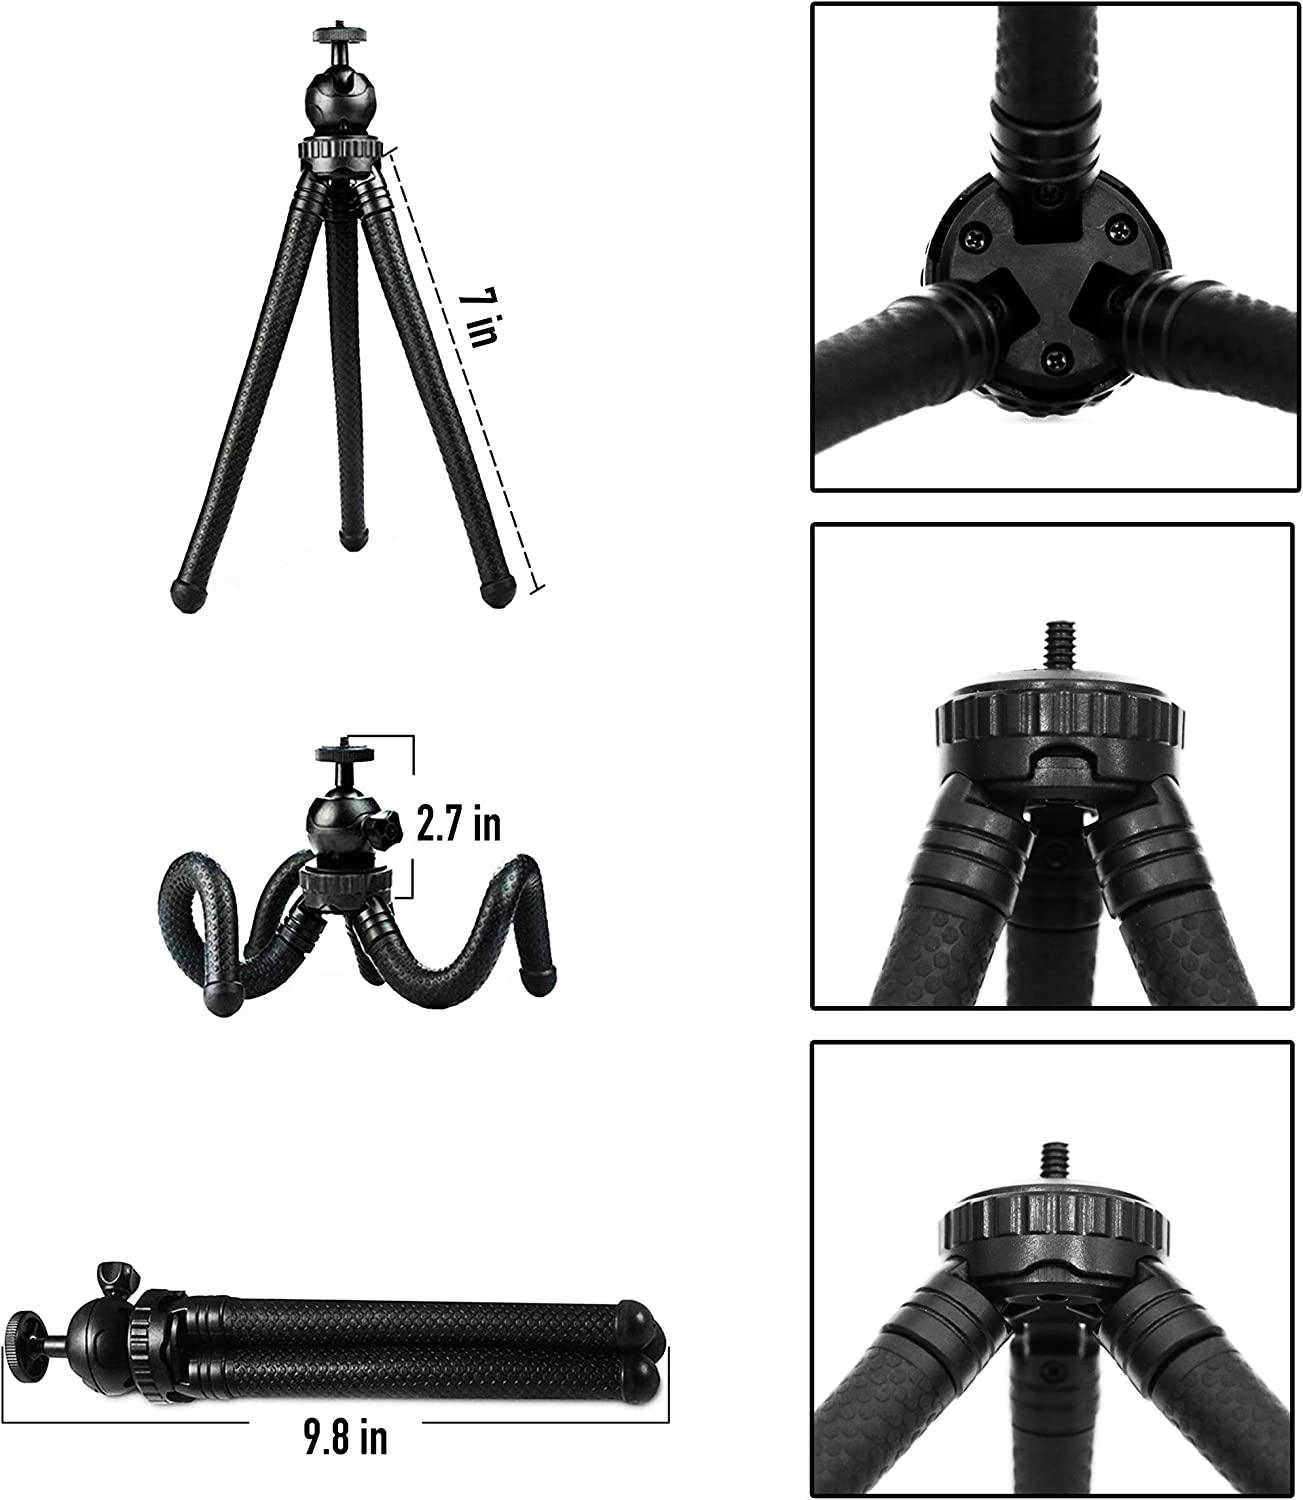 Sports Camera GoPro Flexible Cell Phone Tripod Adjustable Camera Stand Holder with Wireless Remote and Universal Clip 360/° Rotating Mini Tripod Stand for iPhone Samsung Android Phone Phone Tripod